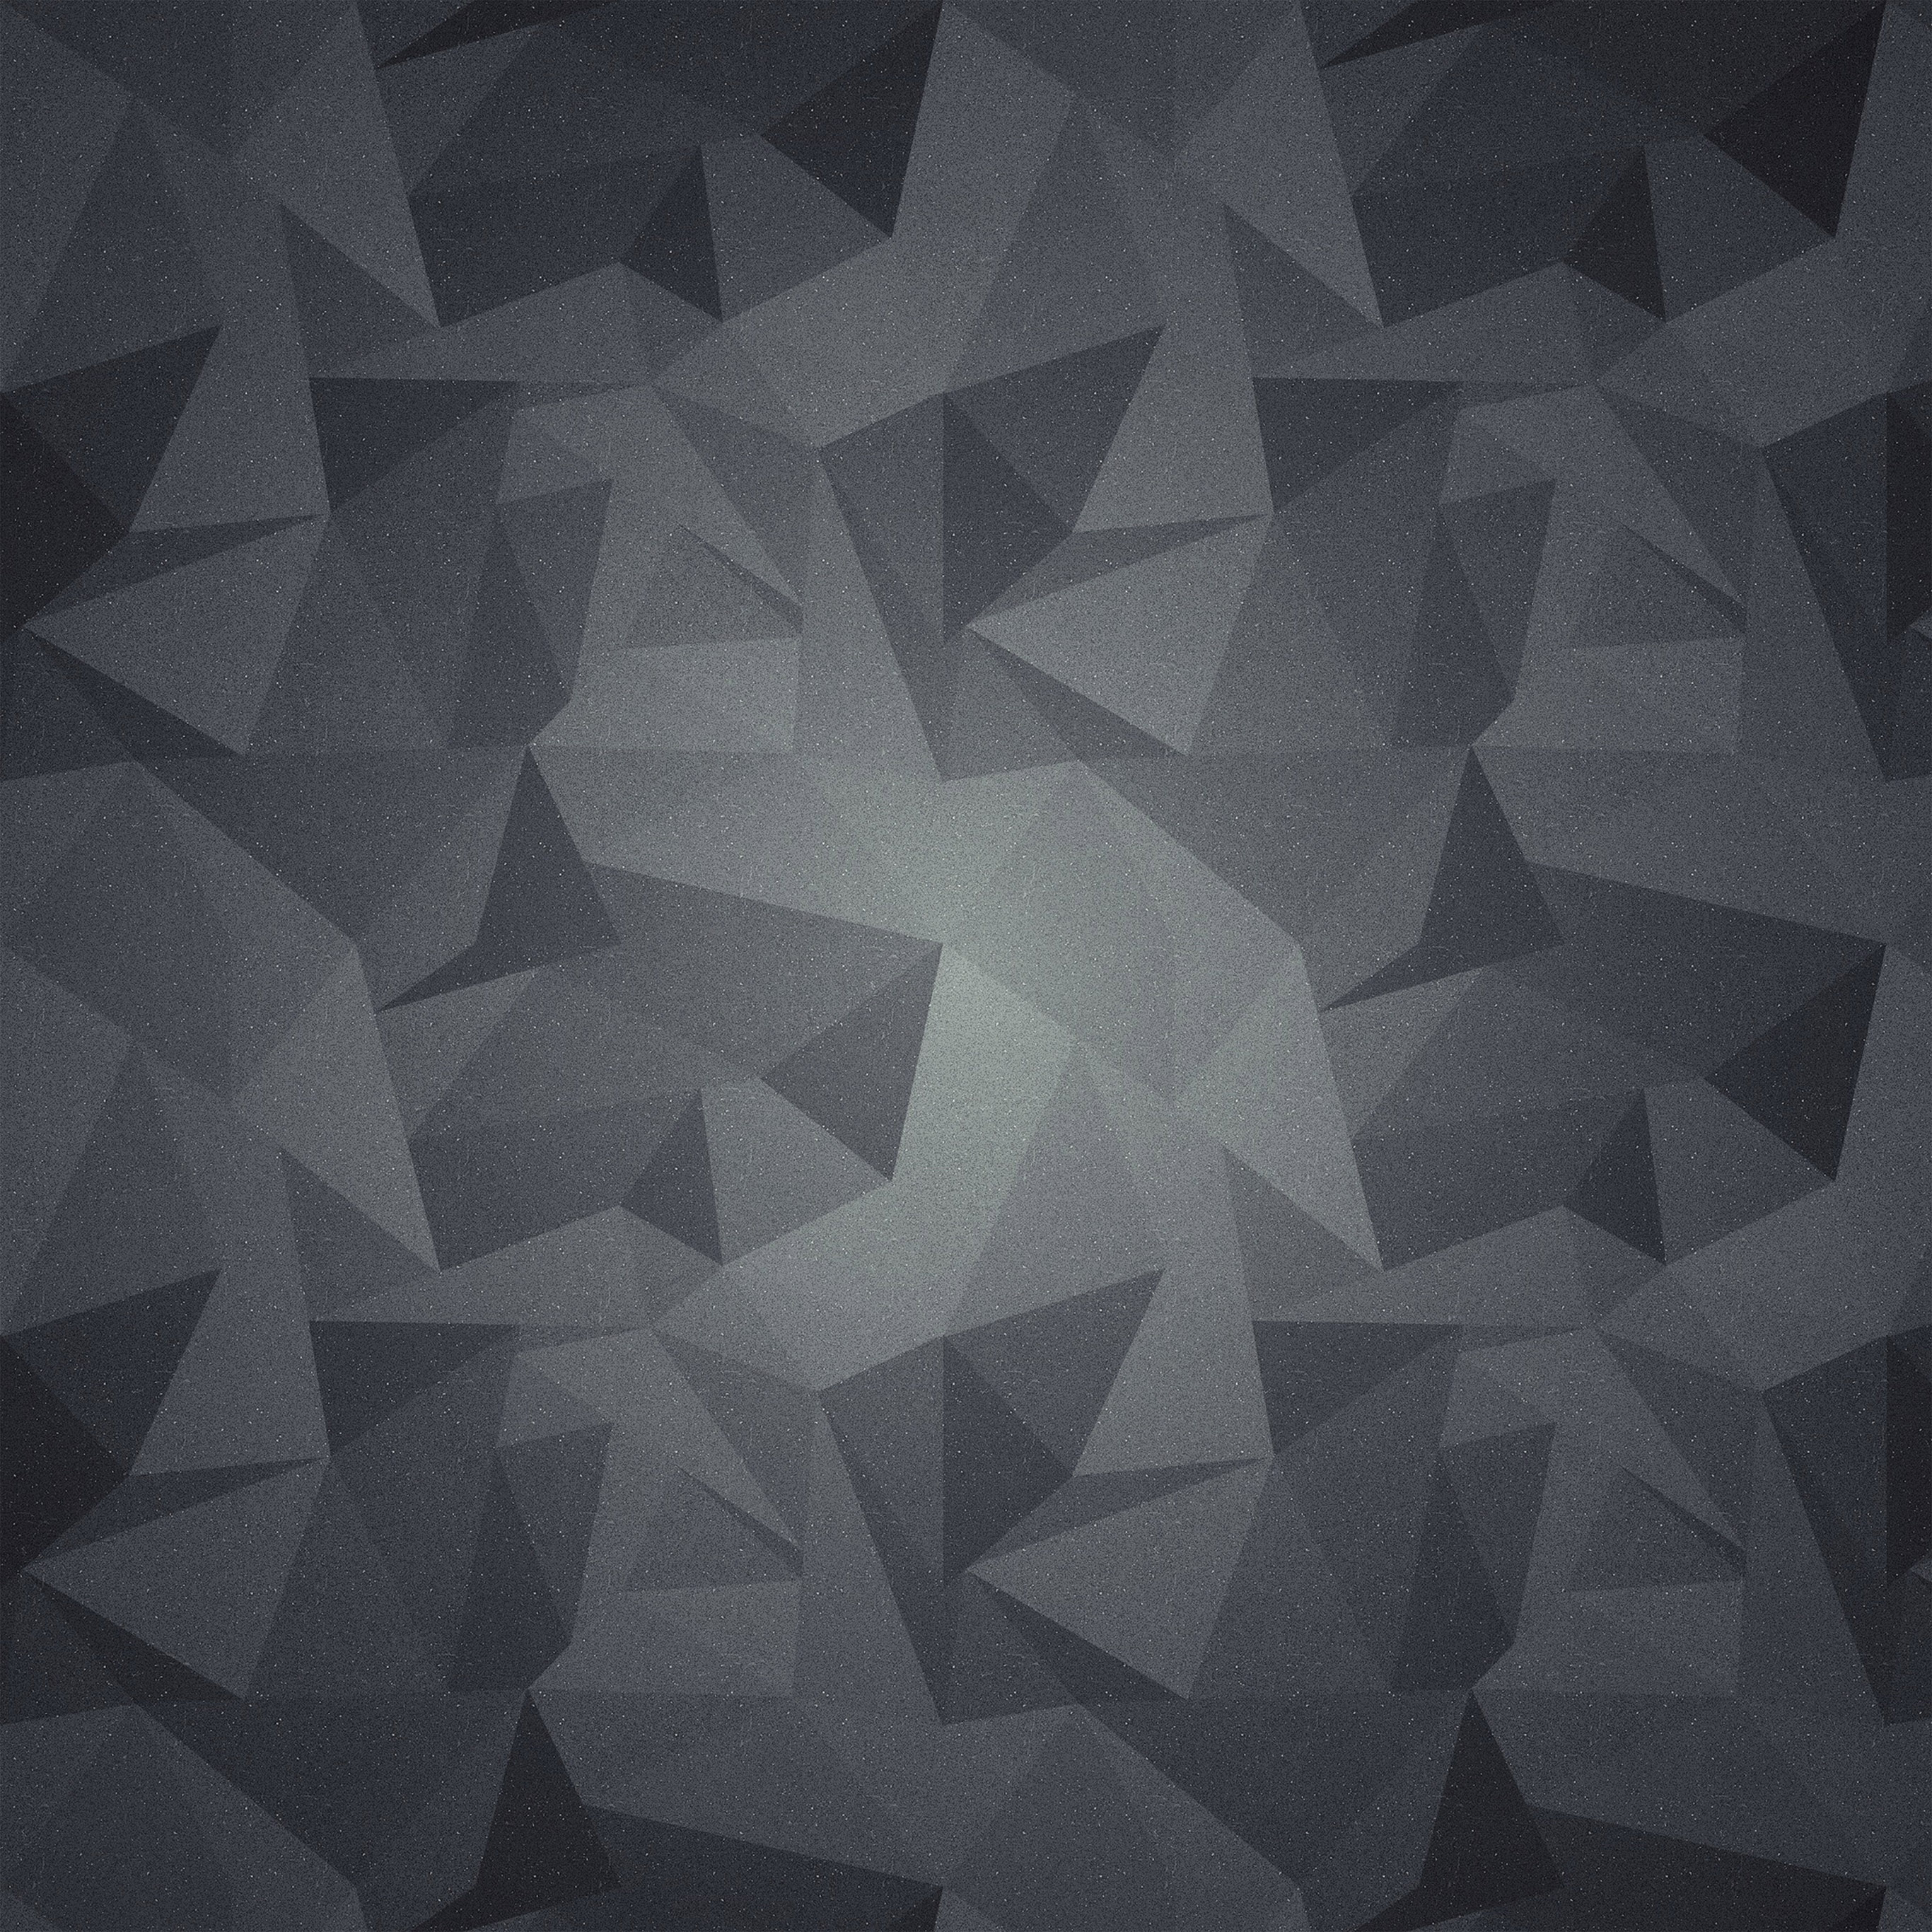 Iphone Wallpaper: Wallpapers Of The Week: Geometric Patterns